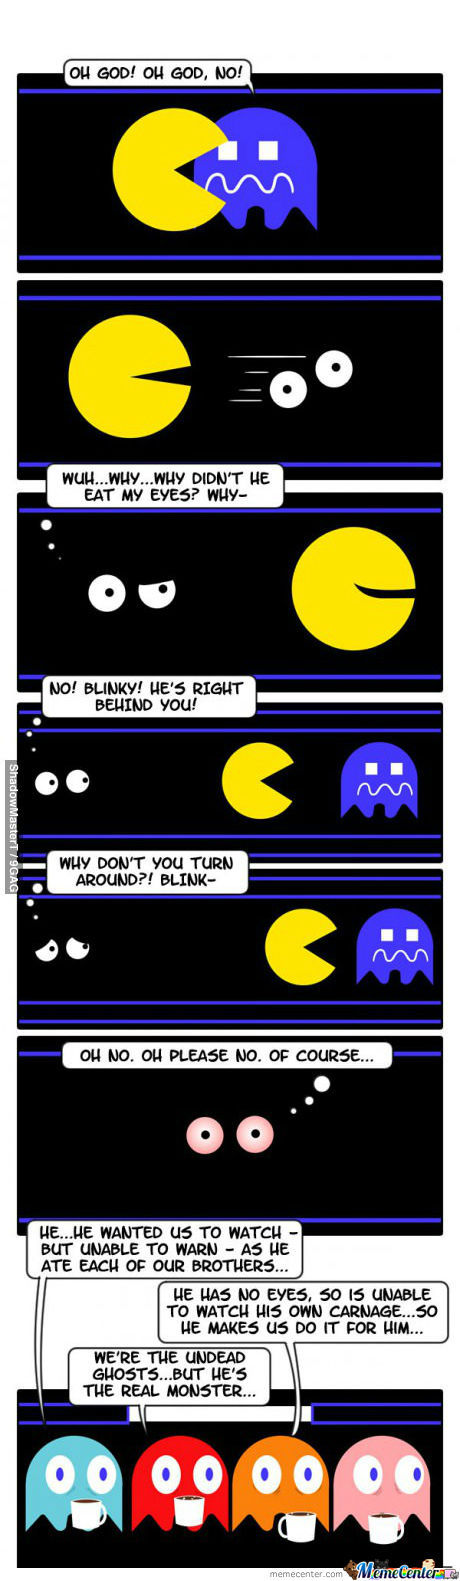 The Secret Behind Pacman